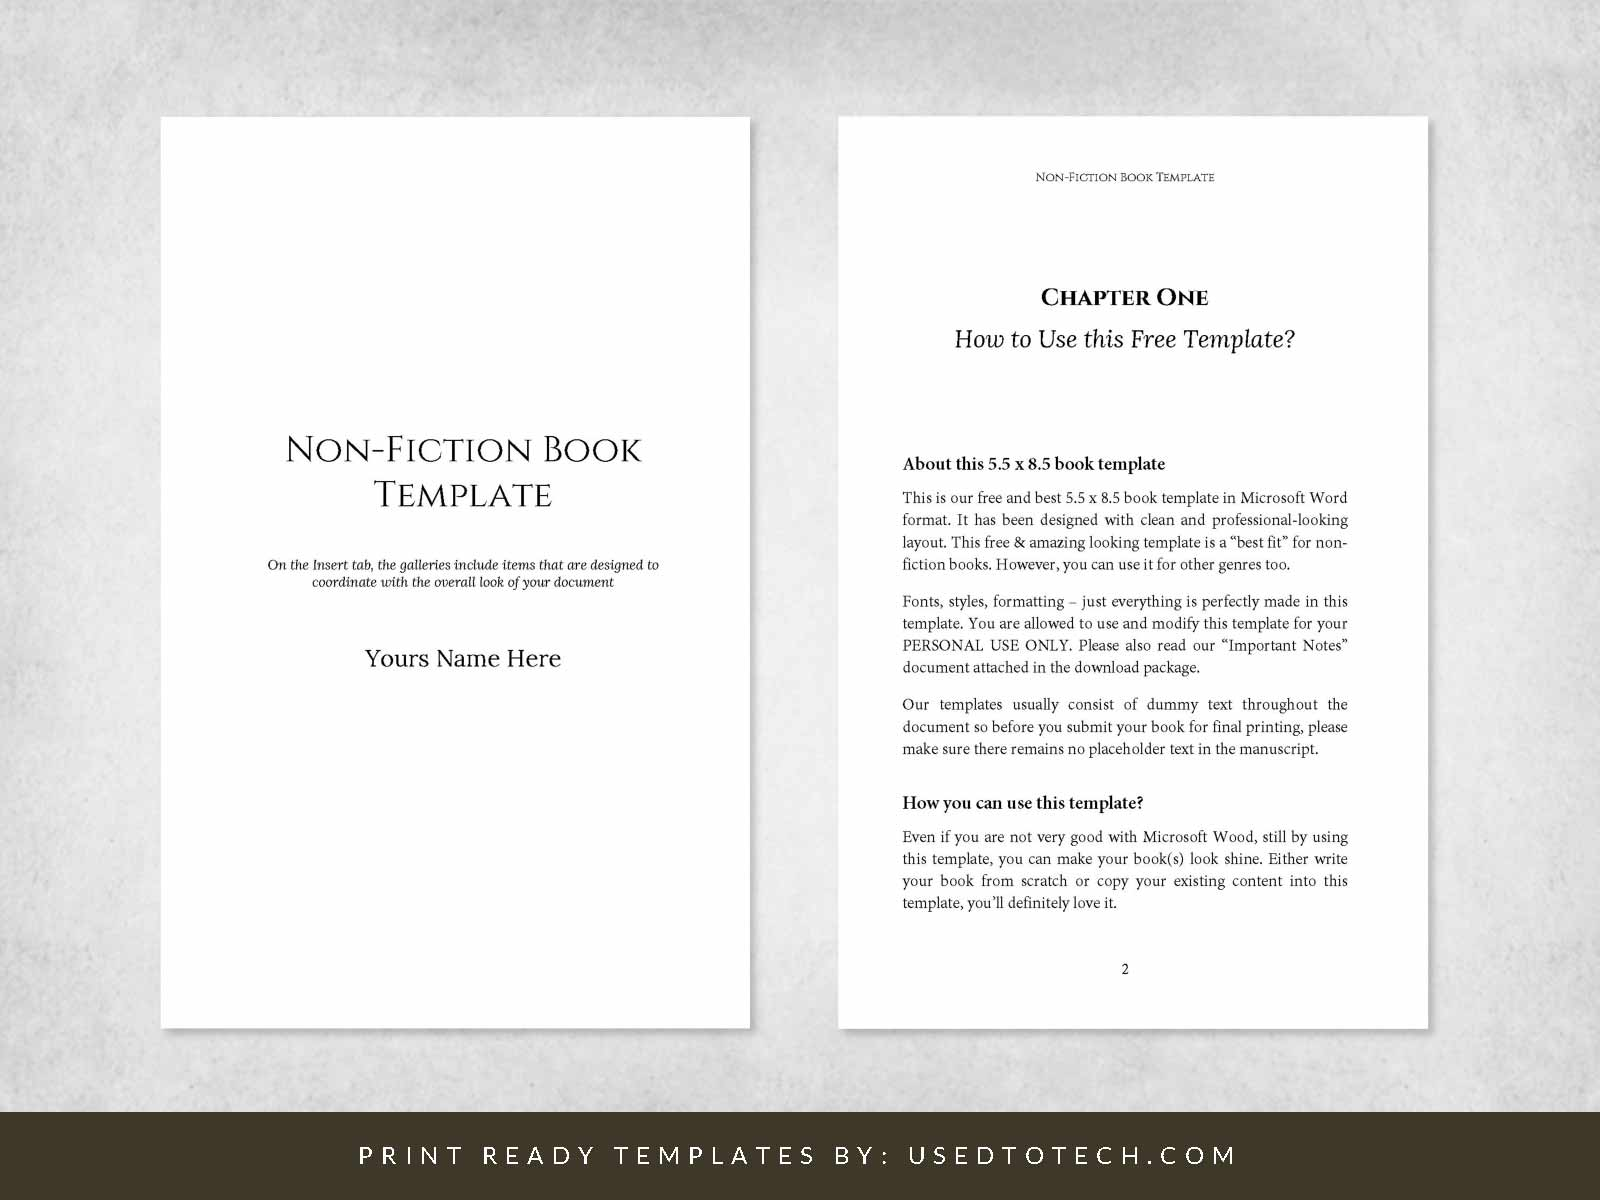 Best non-fiction book template in Microsoft Word, 5.5 x 8.5